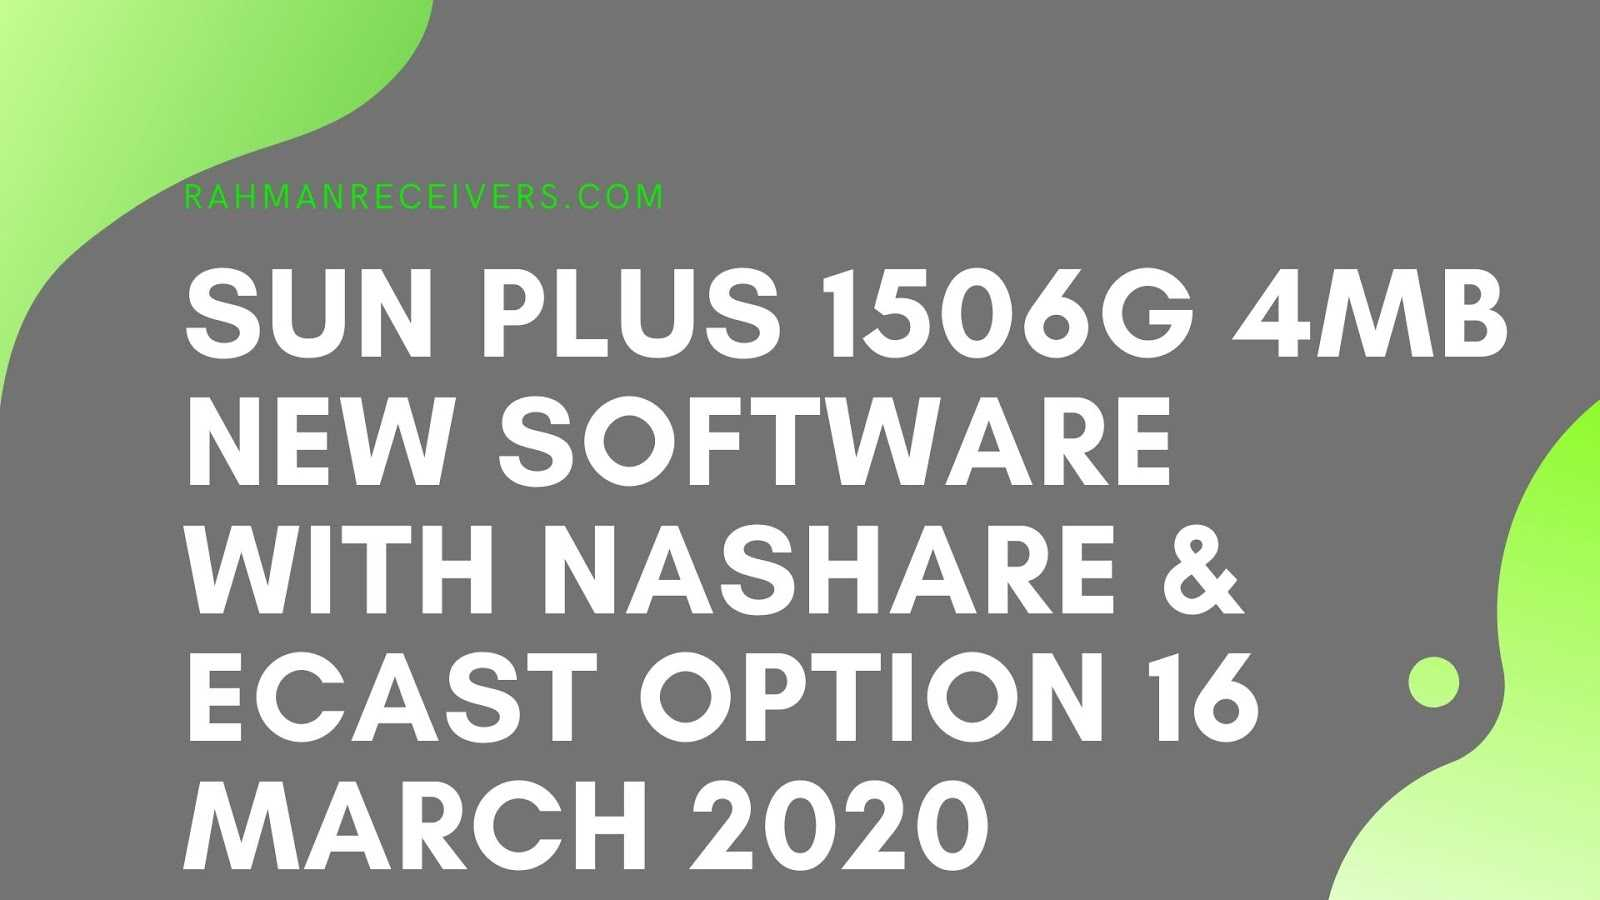 SUN PLUS 1506G 4MB NEW SOFTWARE WITH NASHARE & ECAST OPTION 16 MARCH 2020